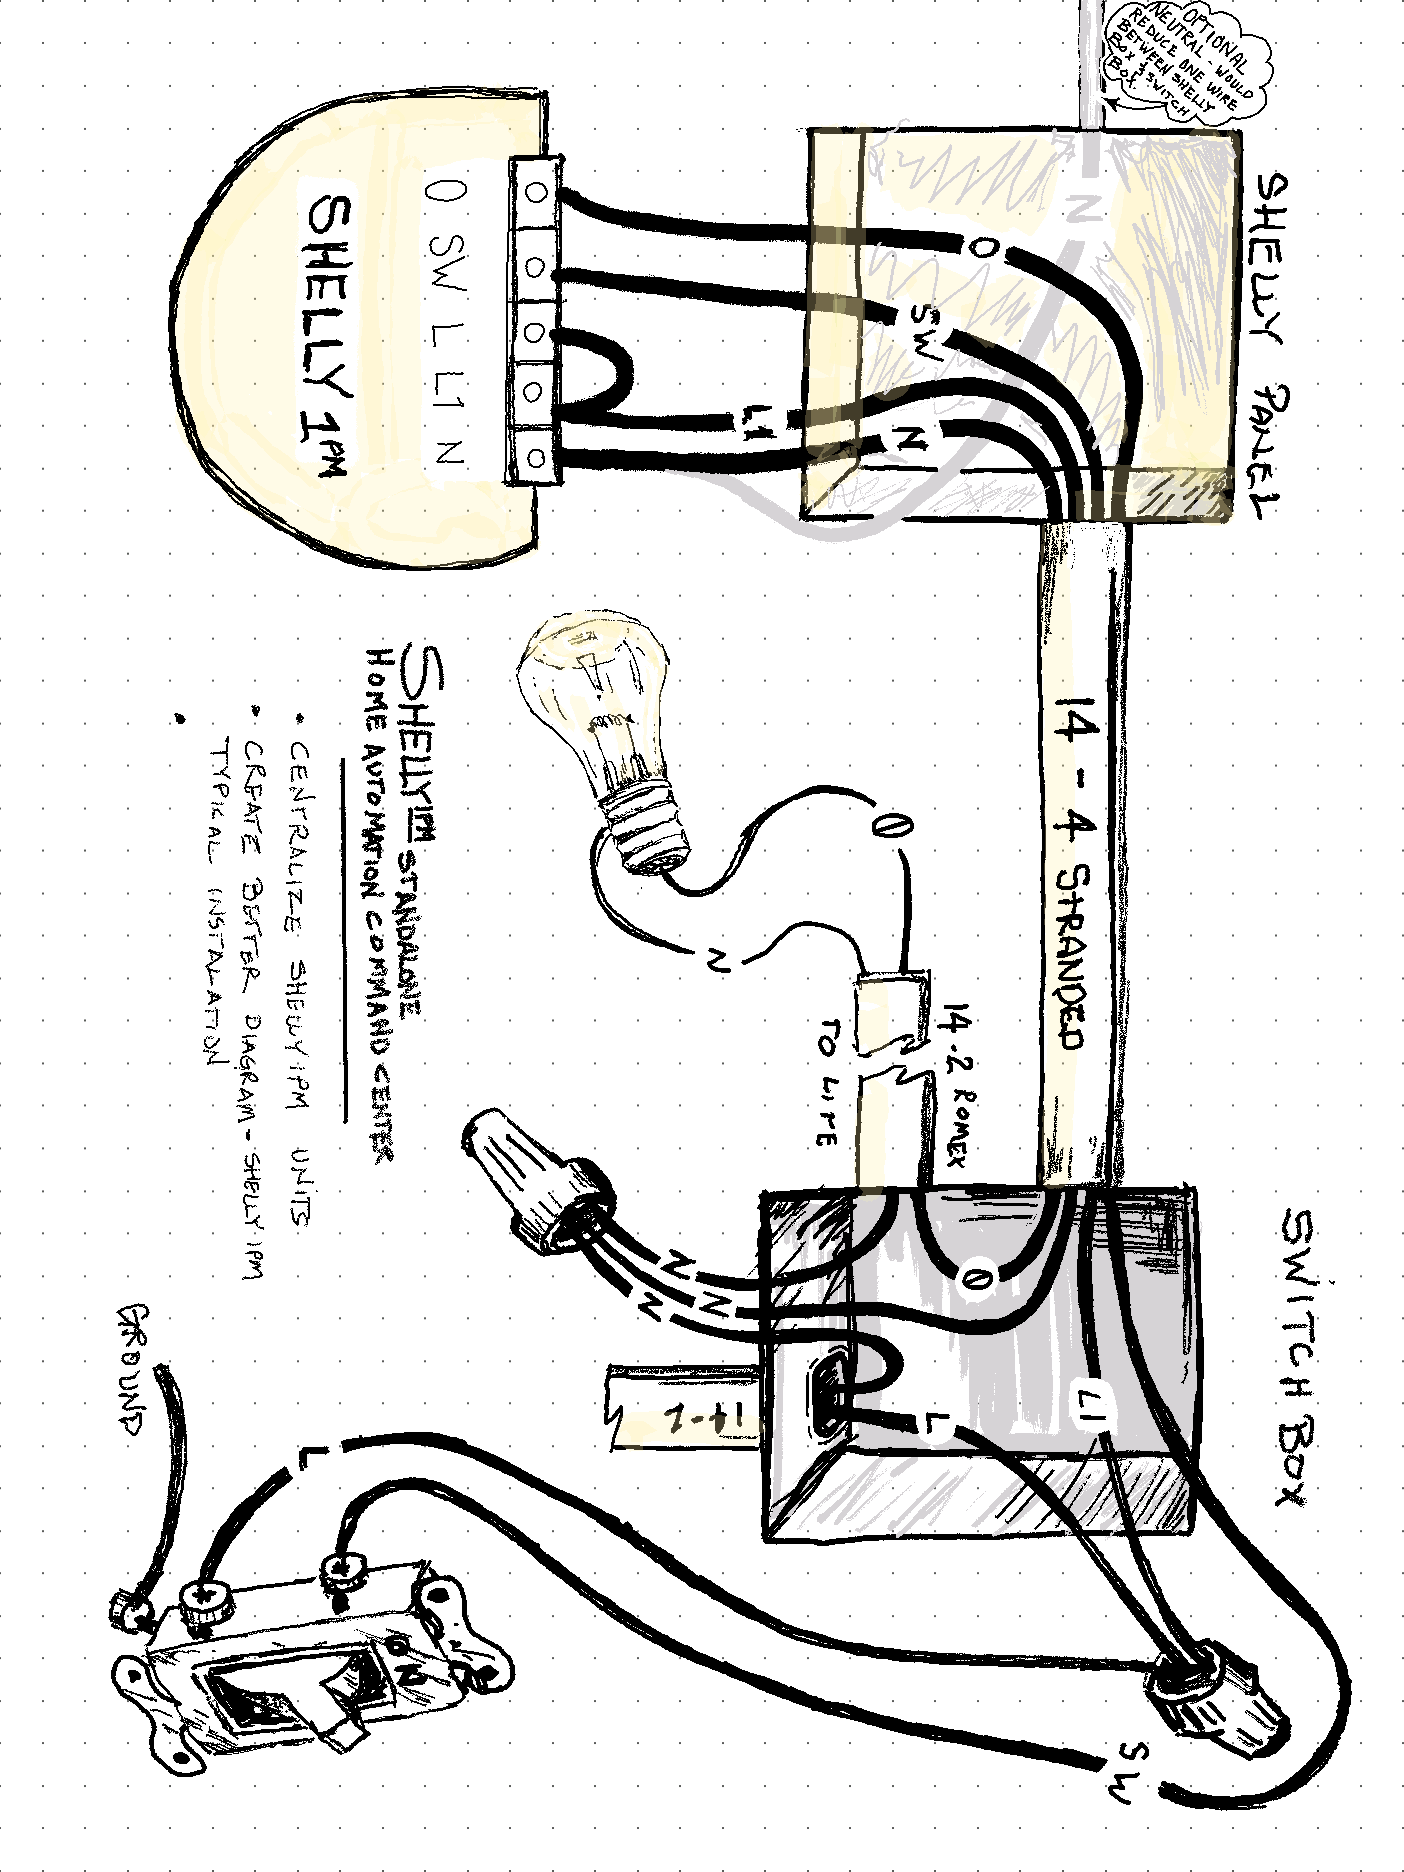 Shelly 1pm Wiring Diagram U S 120v In Line With Functional Light Switch In 2020 Light Switch Light Wire